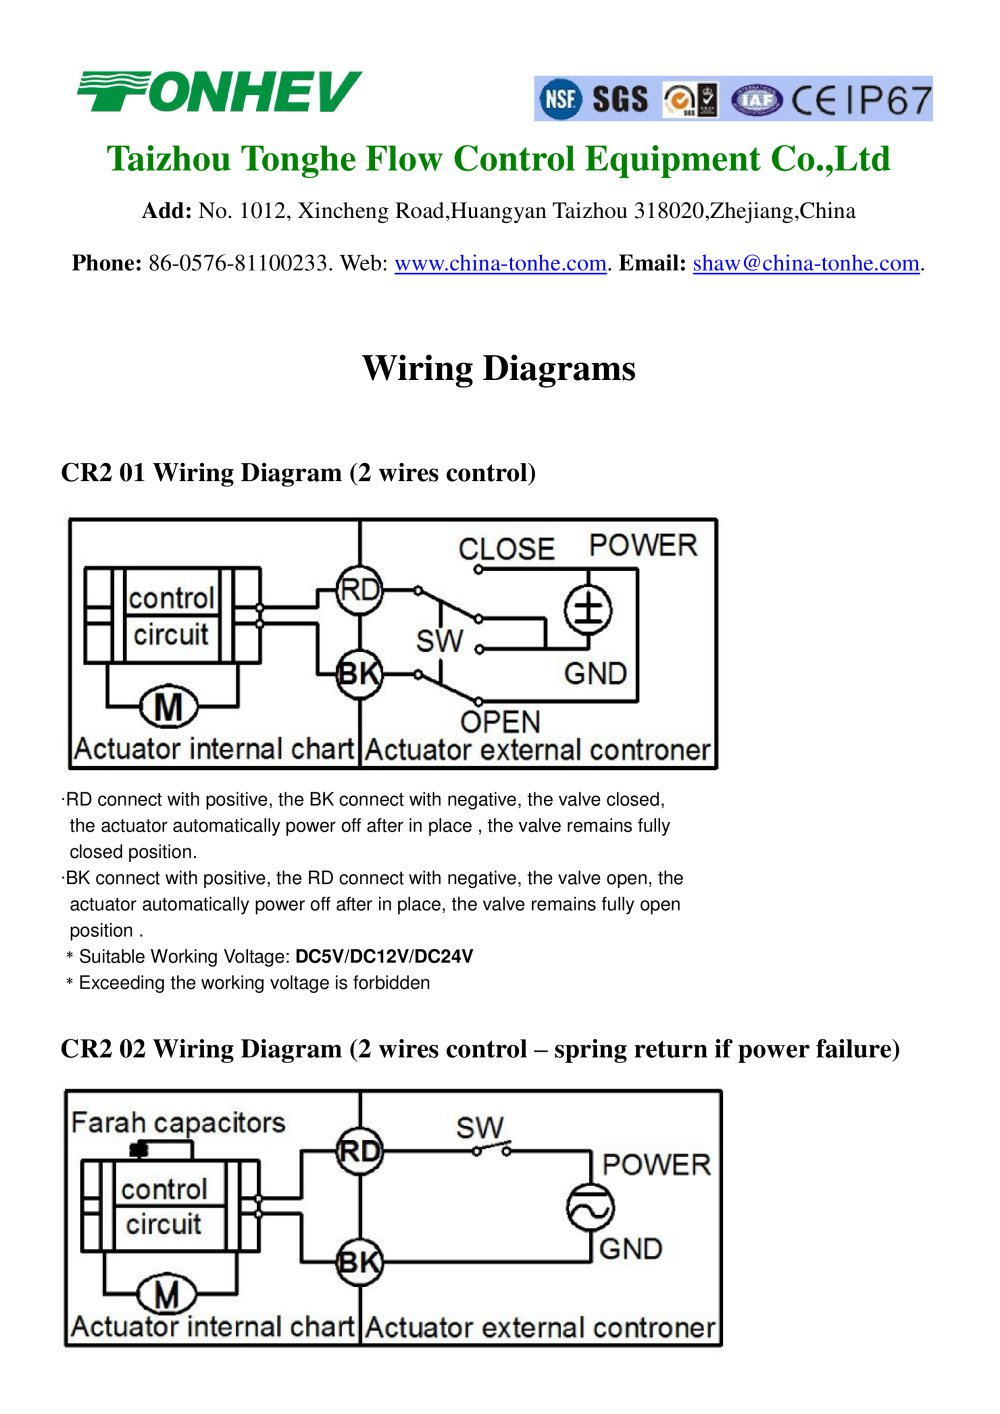 Valve Wiring Diagram Schematic Diagrams House Layout Tonhe Motorized Taizhou Flow Control Mac